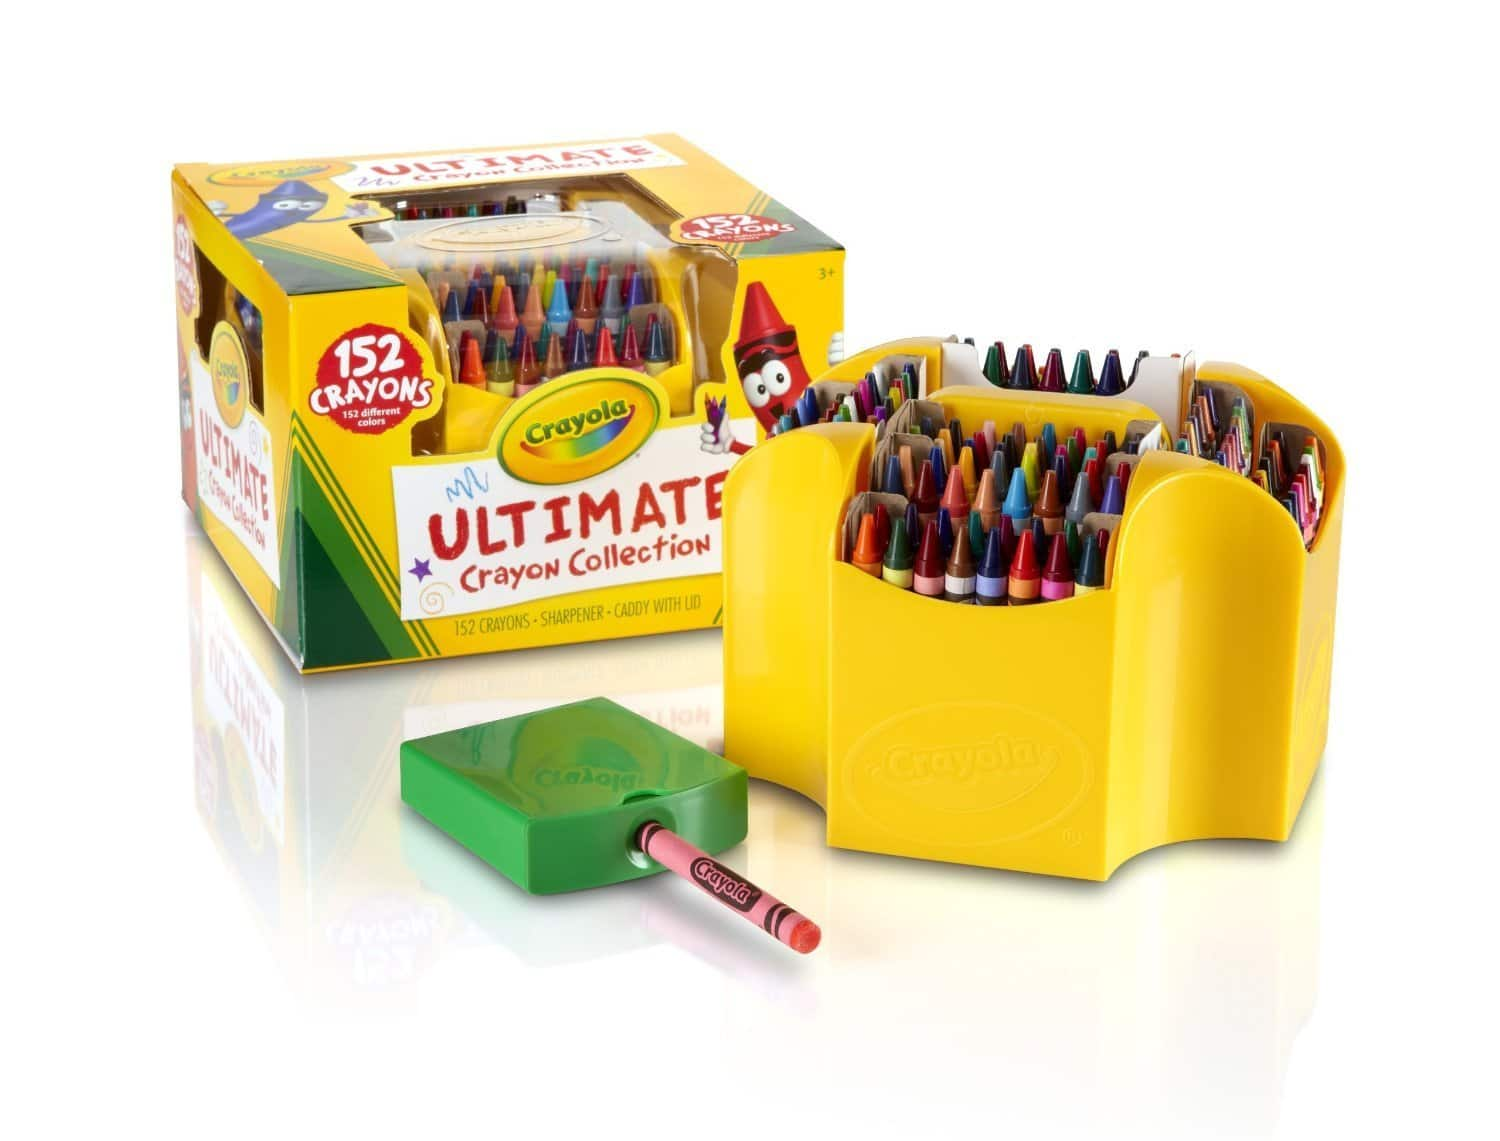 Crayola Ultimate Crayon Case (152 Crayons) $8.99 + Free Shipping w/ Prime or FSSS